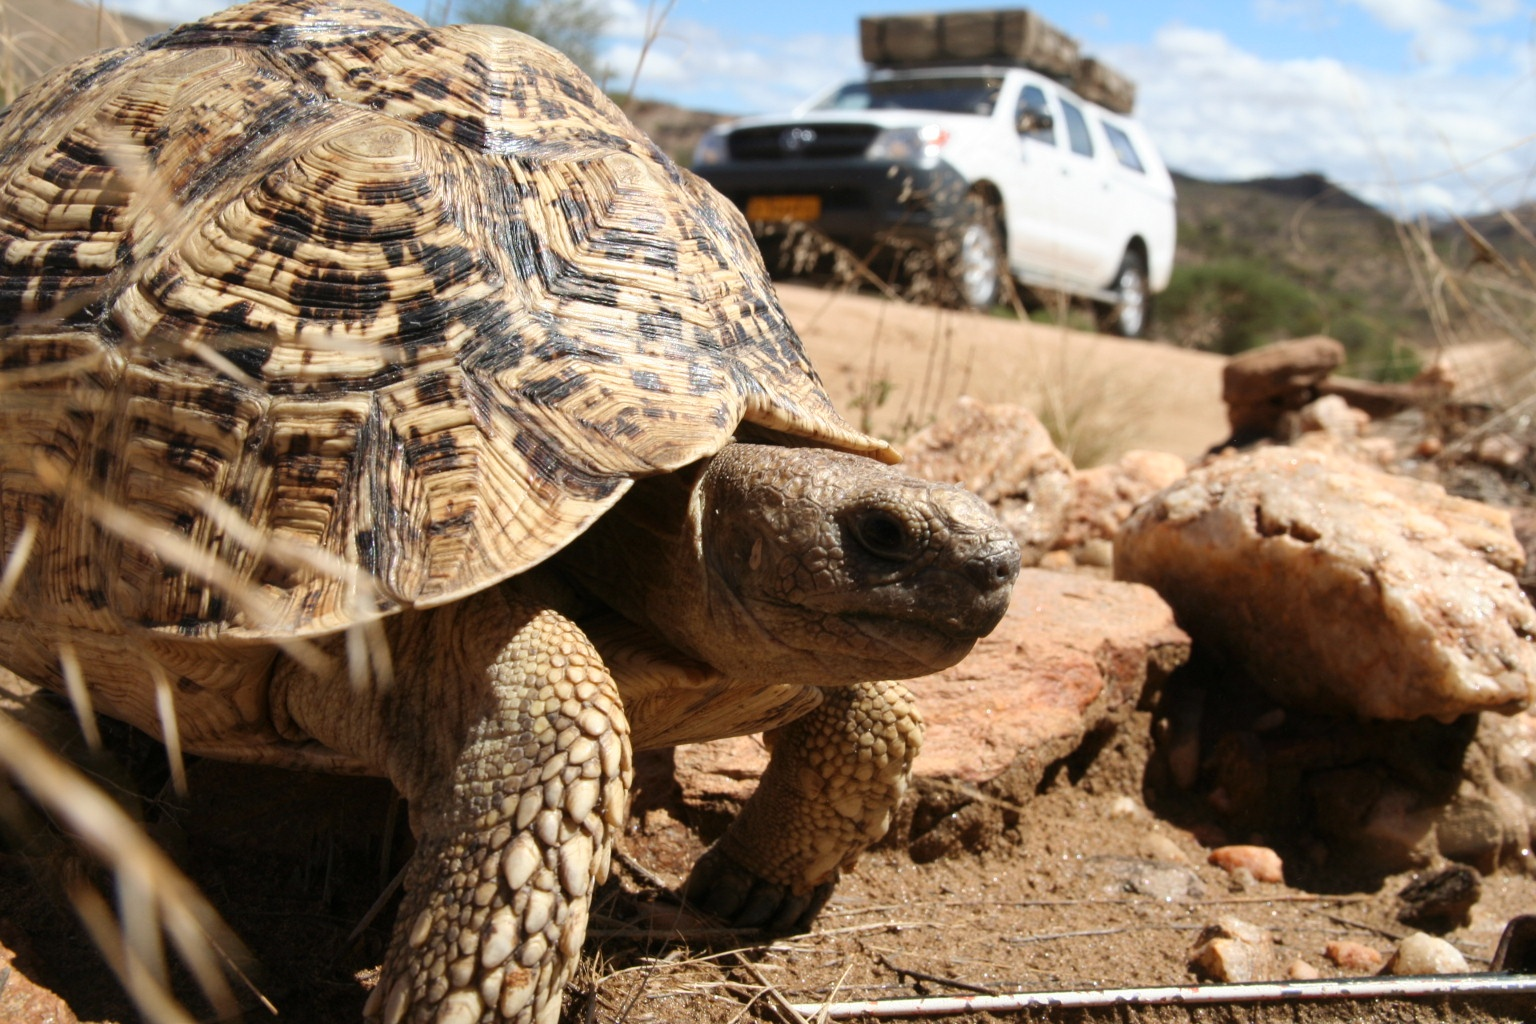 First animal encounter outside Windhoek (quite a large one)